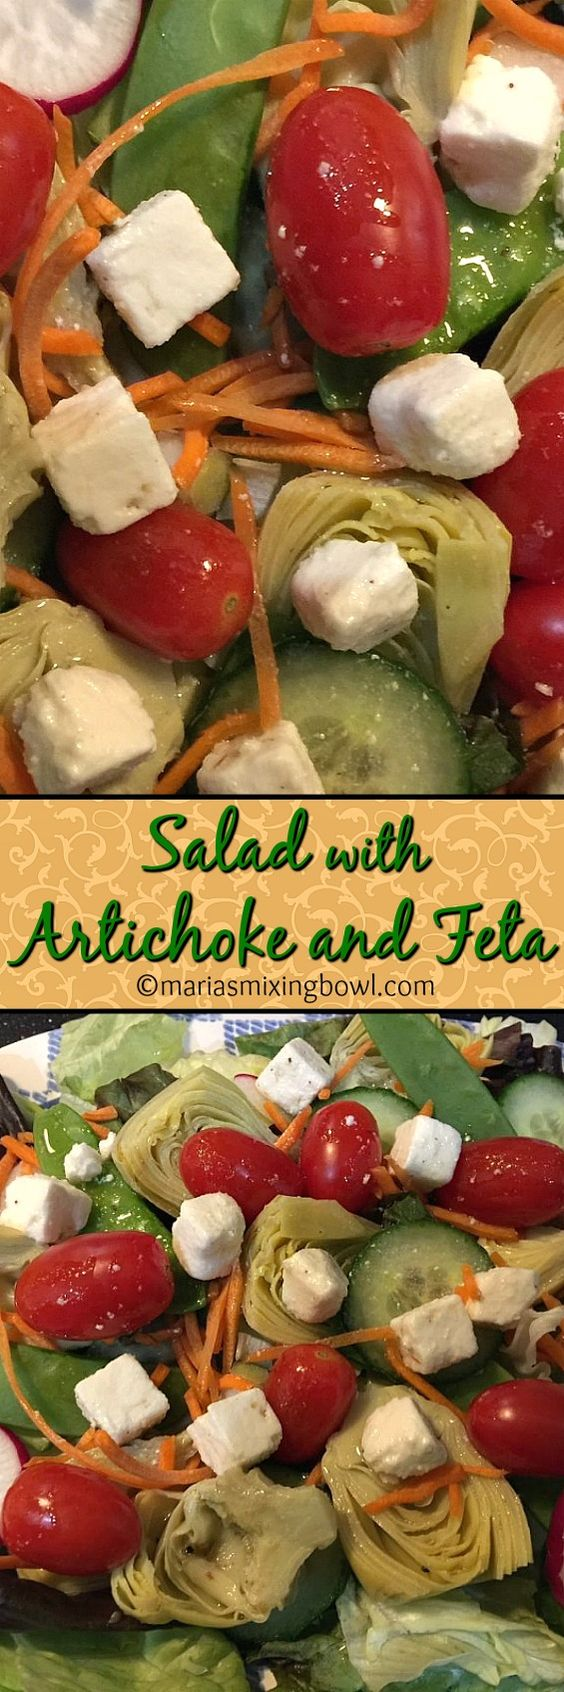 Salad with Artichoke and Feta - A simple and delicious salad that manages to make it to our dinner table a couple of times a week. Yes it is one of our favorites.